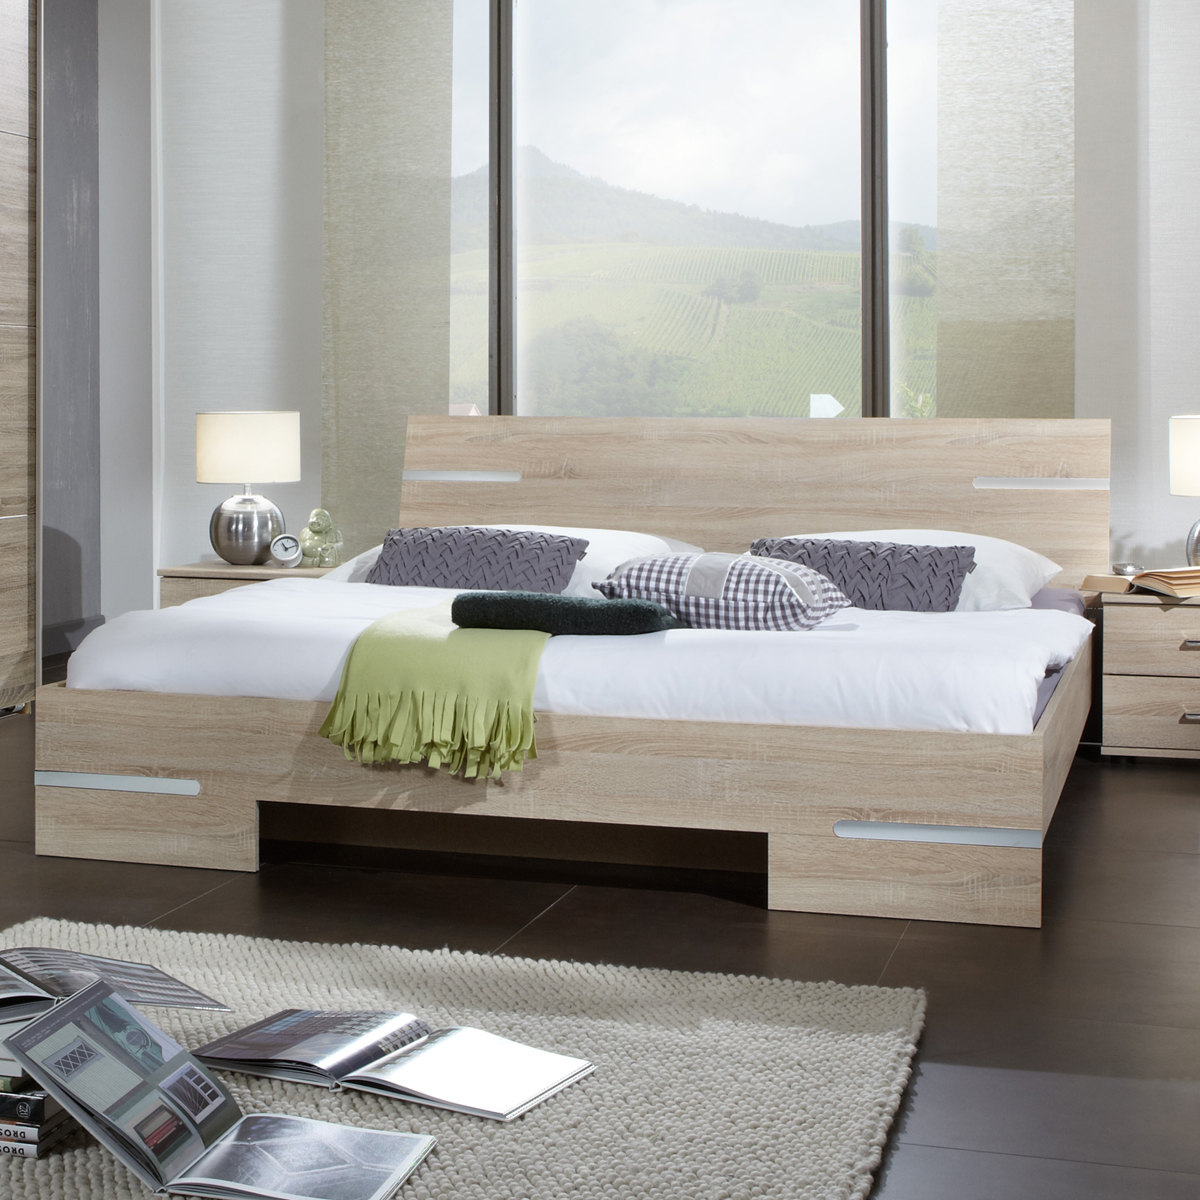 futonbett astera bett futon in sonoma eiche s gerau chrom 180x200 ebay. Black Bedroom Furniture Sets. Home Design Ideas